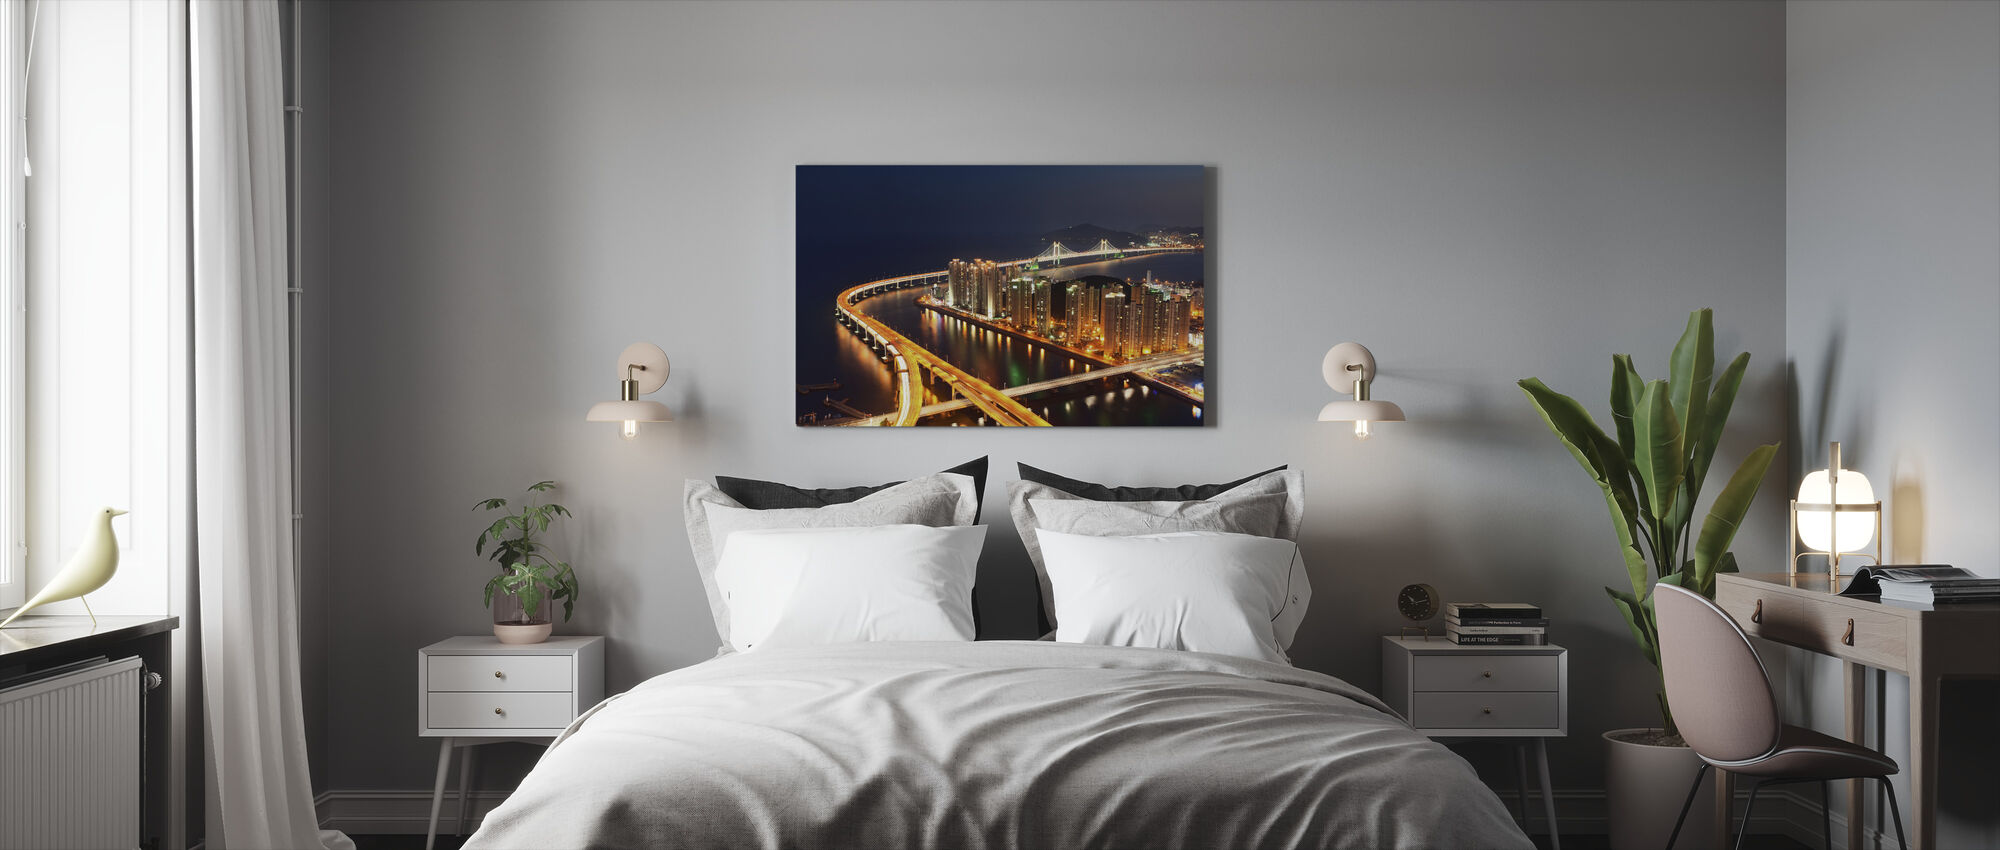 Gwangan Bridge Highway, South Korea - Canvas print - Bedroom